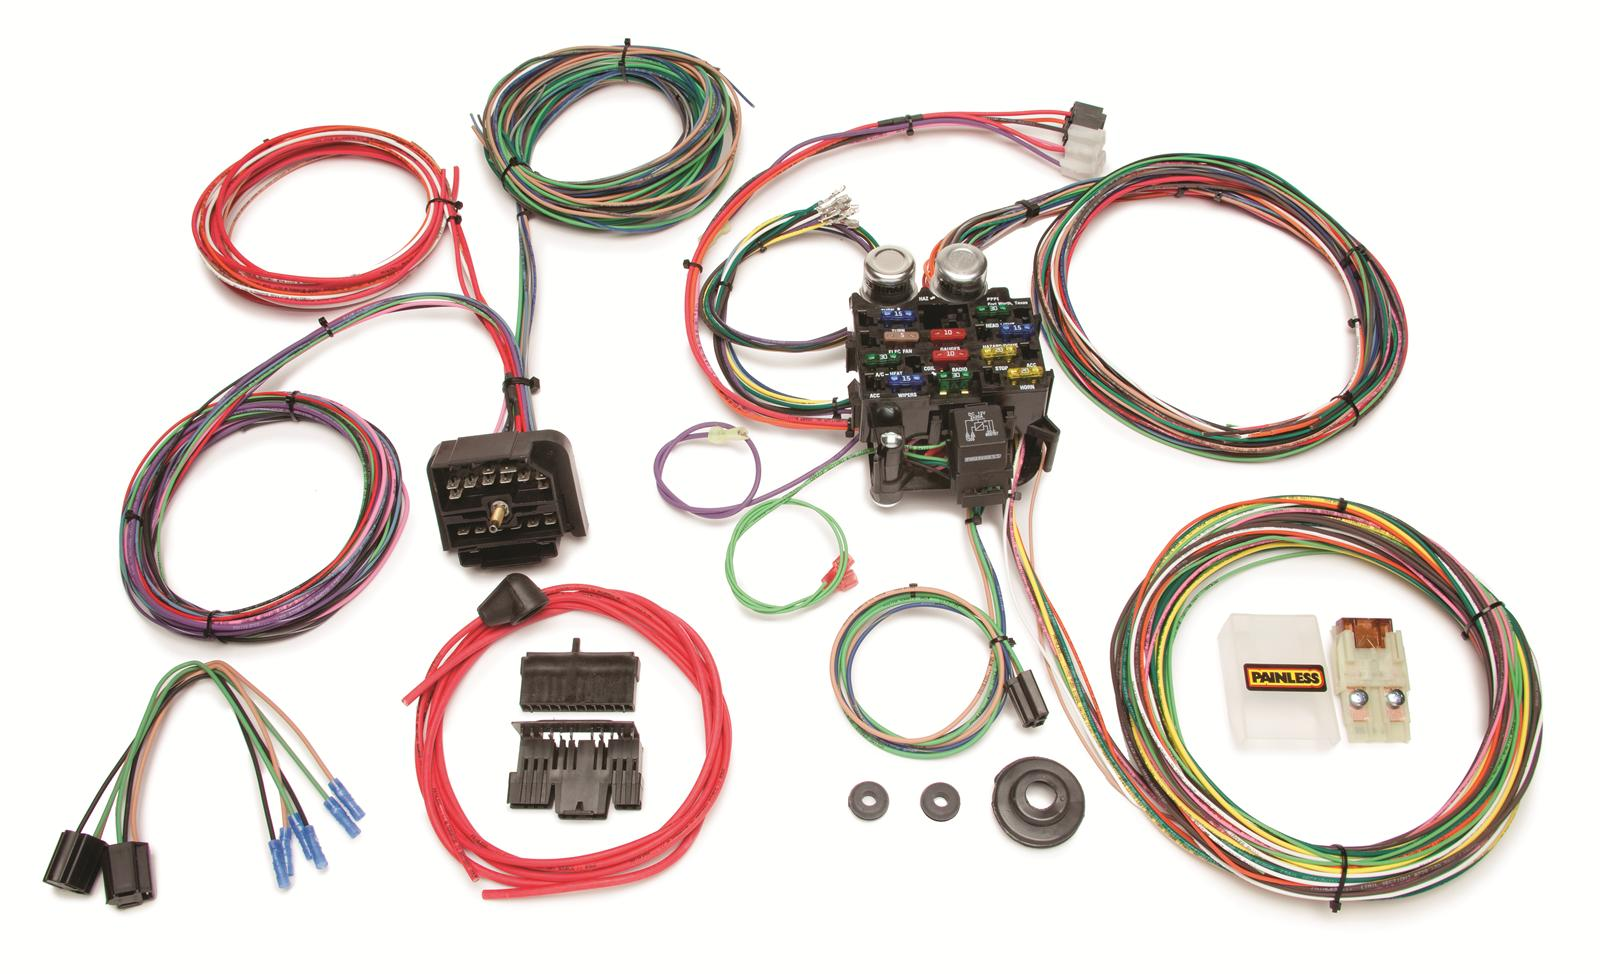 painless performance 22 circuit jeep cj harnesses 10106 free rh summitracing com cj7 painless wiring harness cj7 painless wiring harness diagram